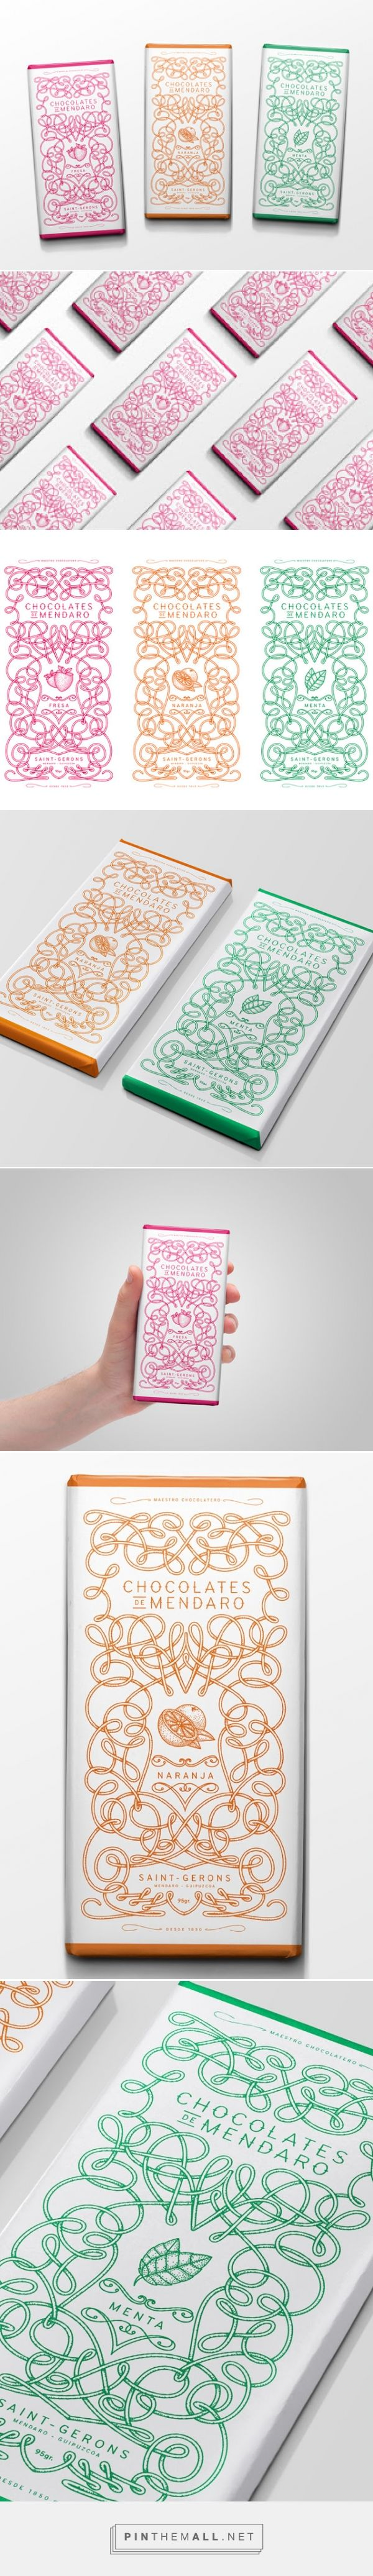 Chocolates de Mendaro Packaging Design